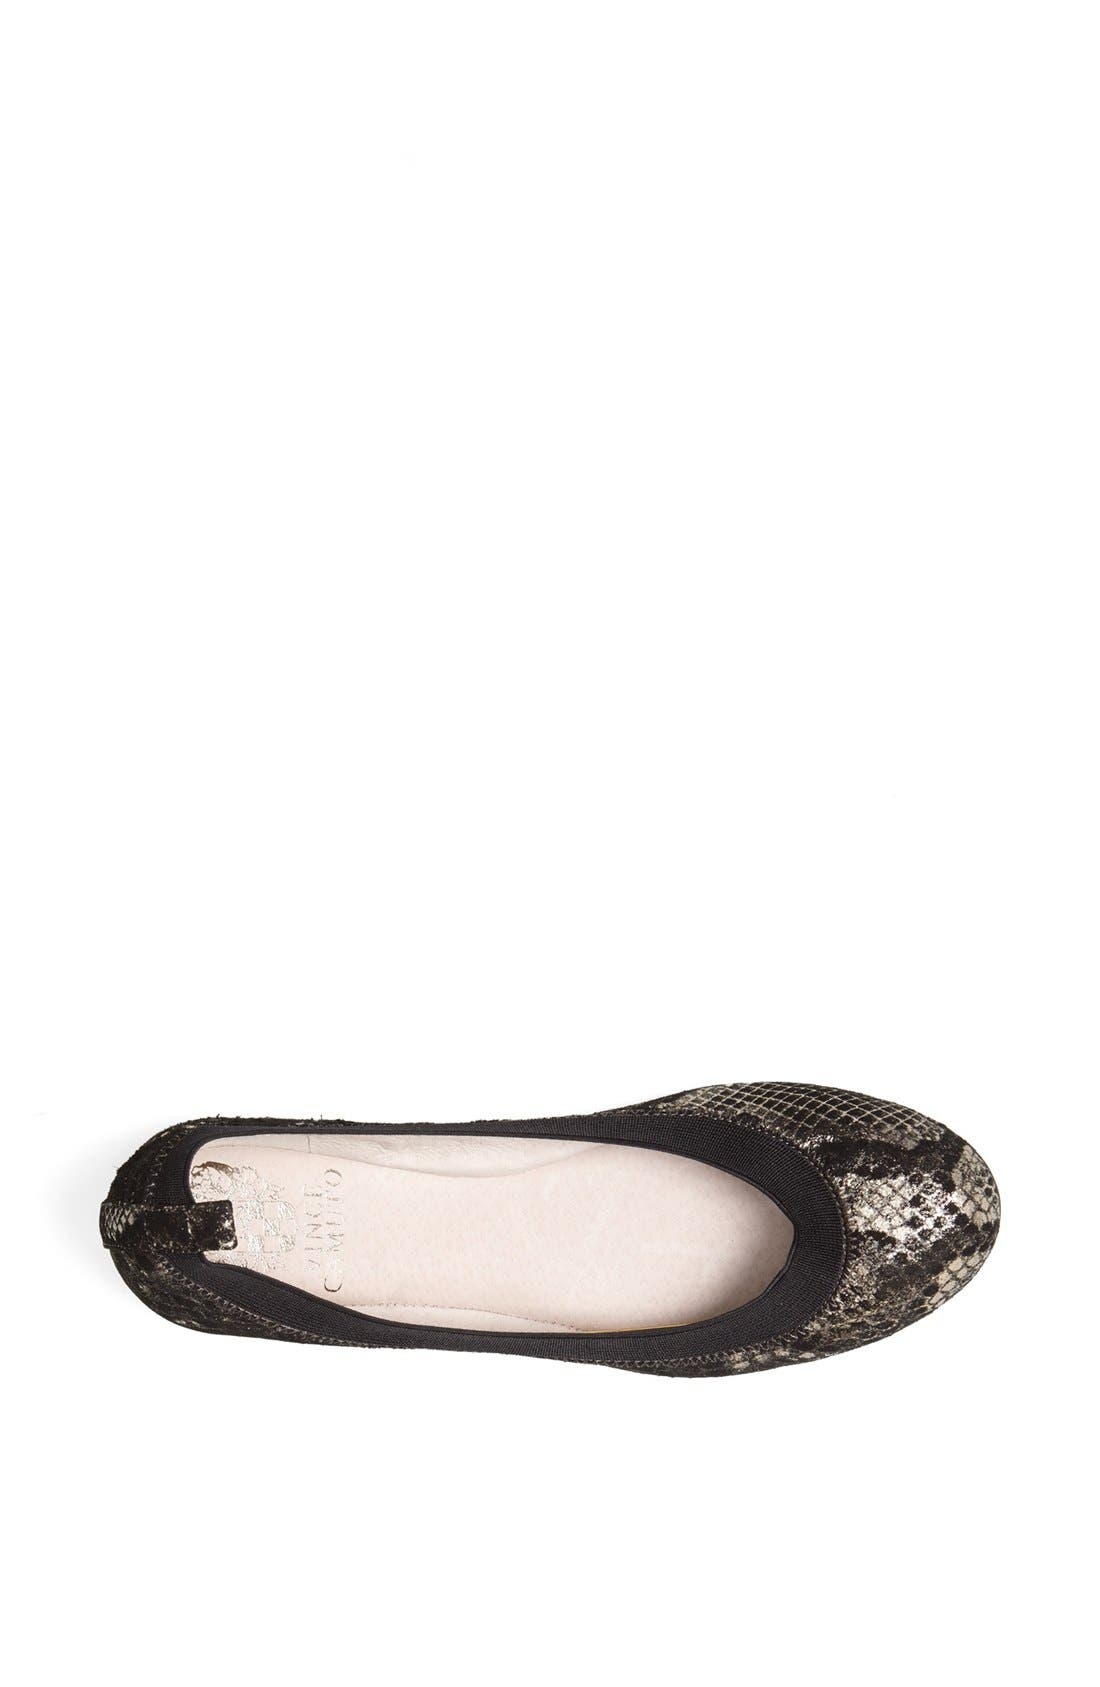 Alternate Image 3  - Vince Camuto 'Jorra' Leather Flat